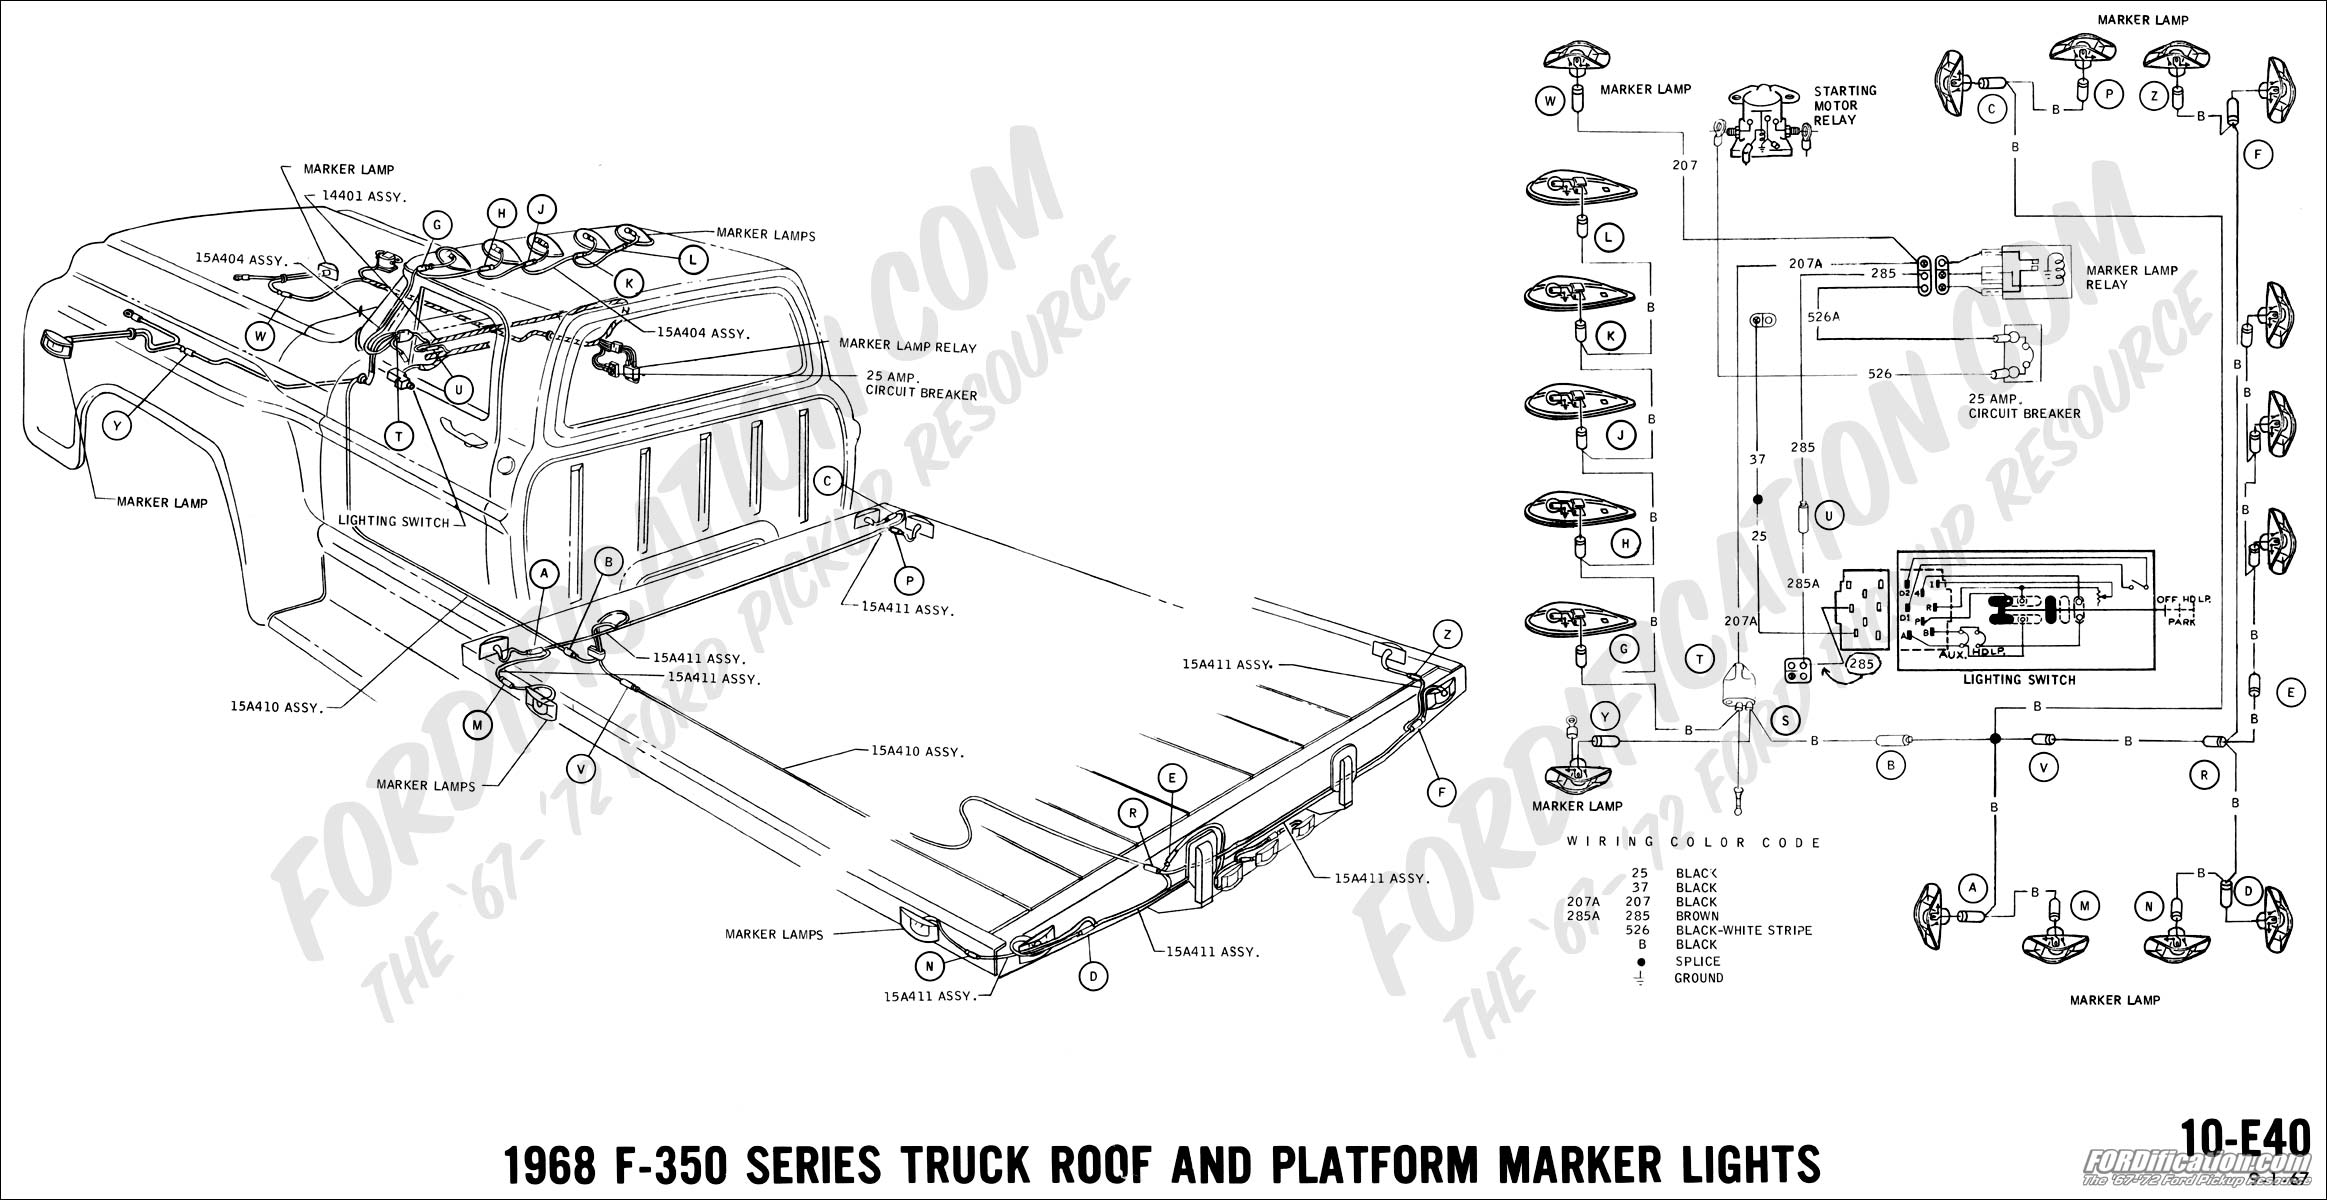 2001 Ford F750 Truck Wiring Diagrams O Wiring Diagram For Free